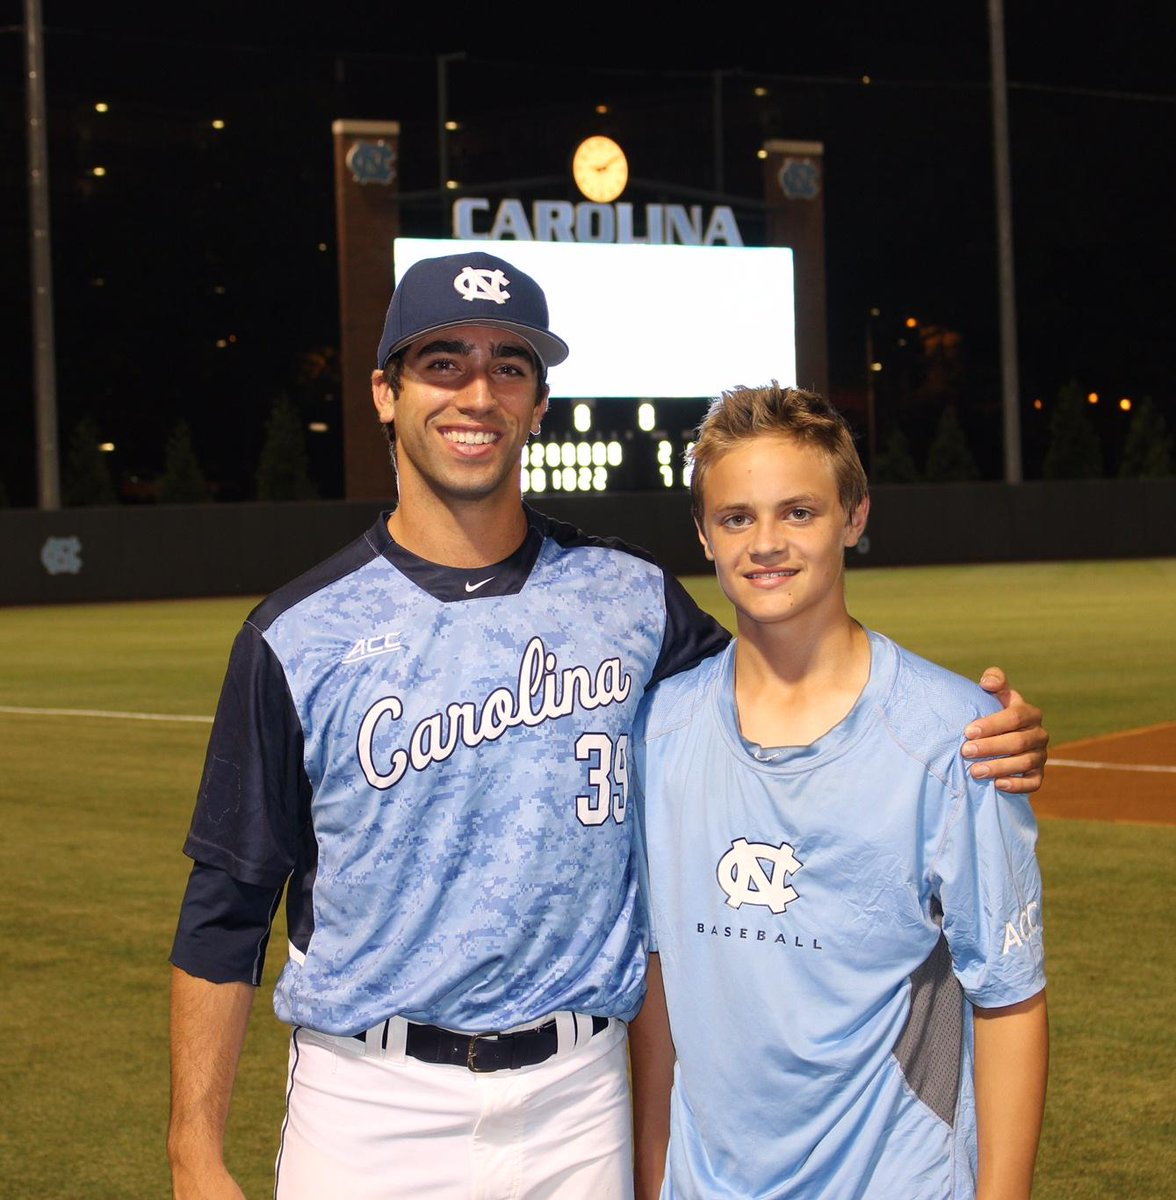 .@DiamondHeels players develop special relationship with Hodgkins lymphoma patient. http://t.co/yTJtEJHFno  #TeamLiam http://t.co/D3FJouwTB8